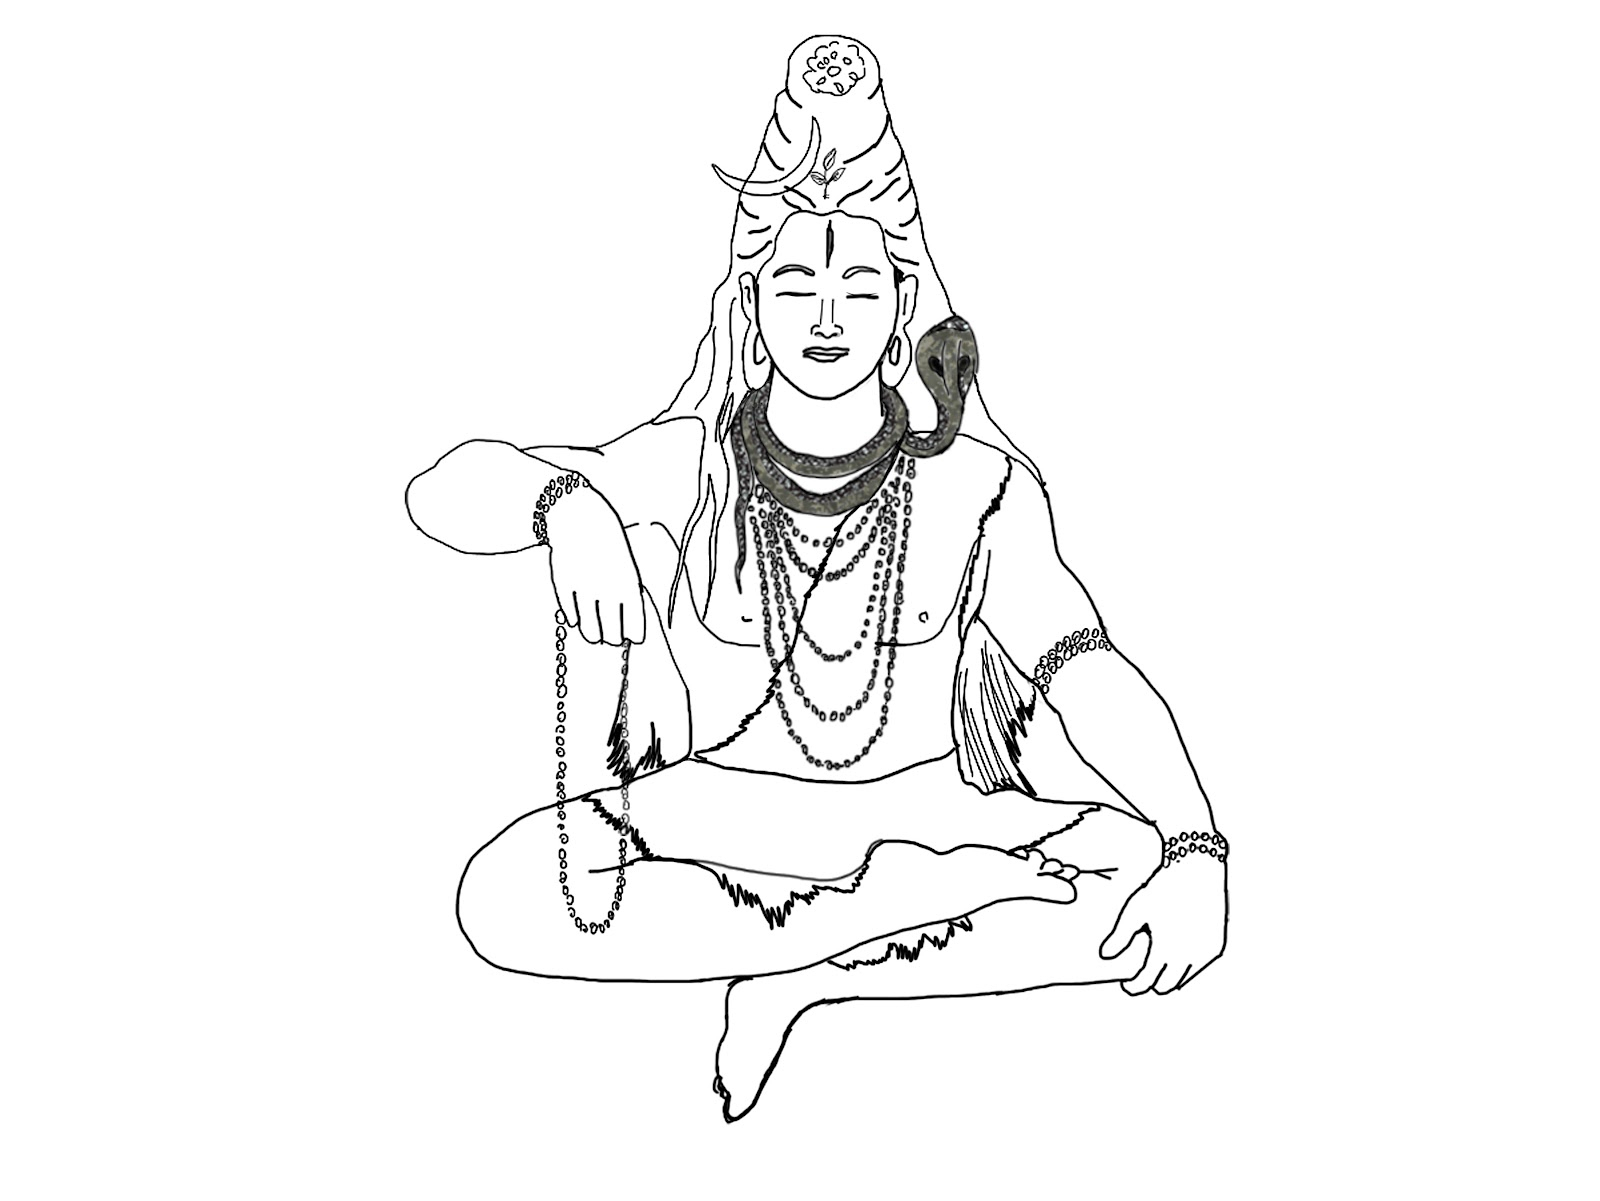 how to draw lord shiva face lord shiva drawing free download on clipartmag draw to face shiva how lord